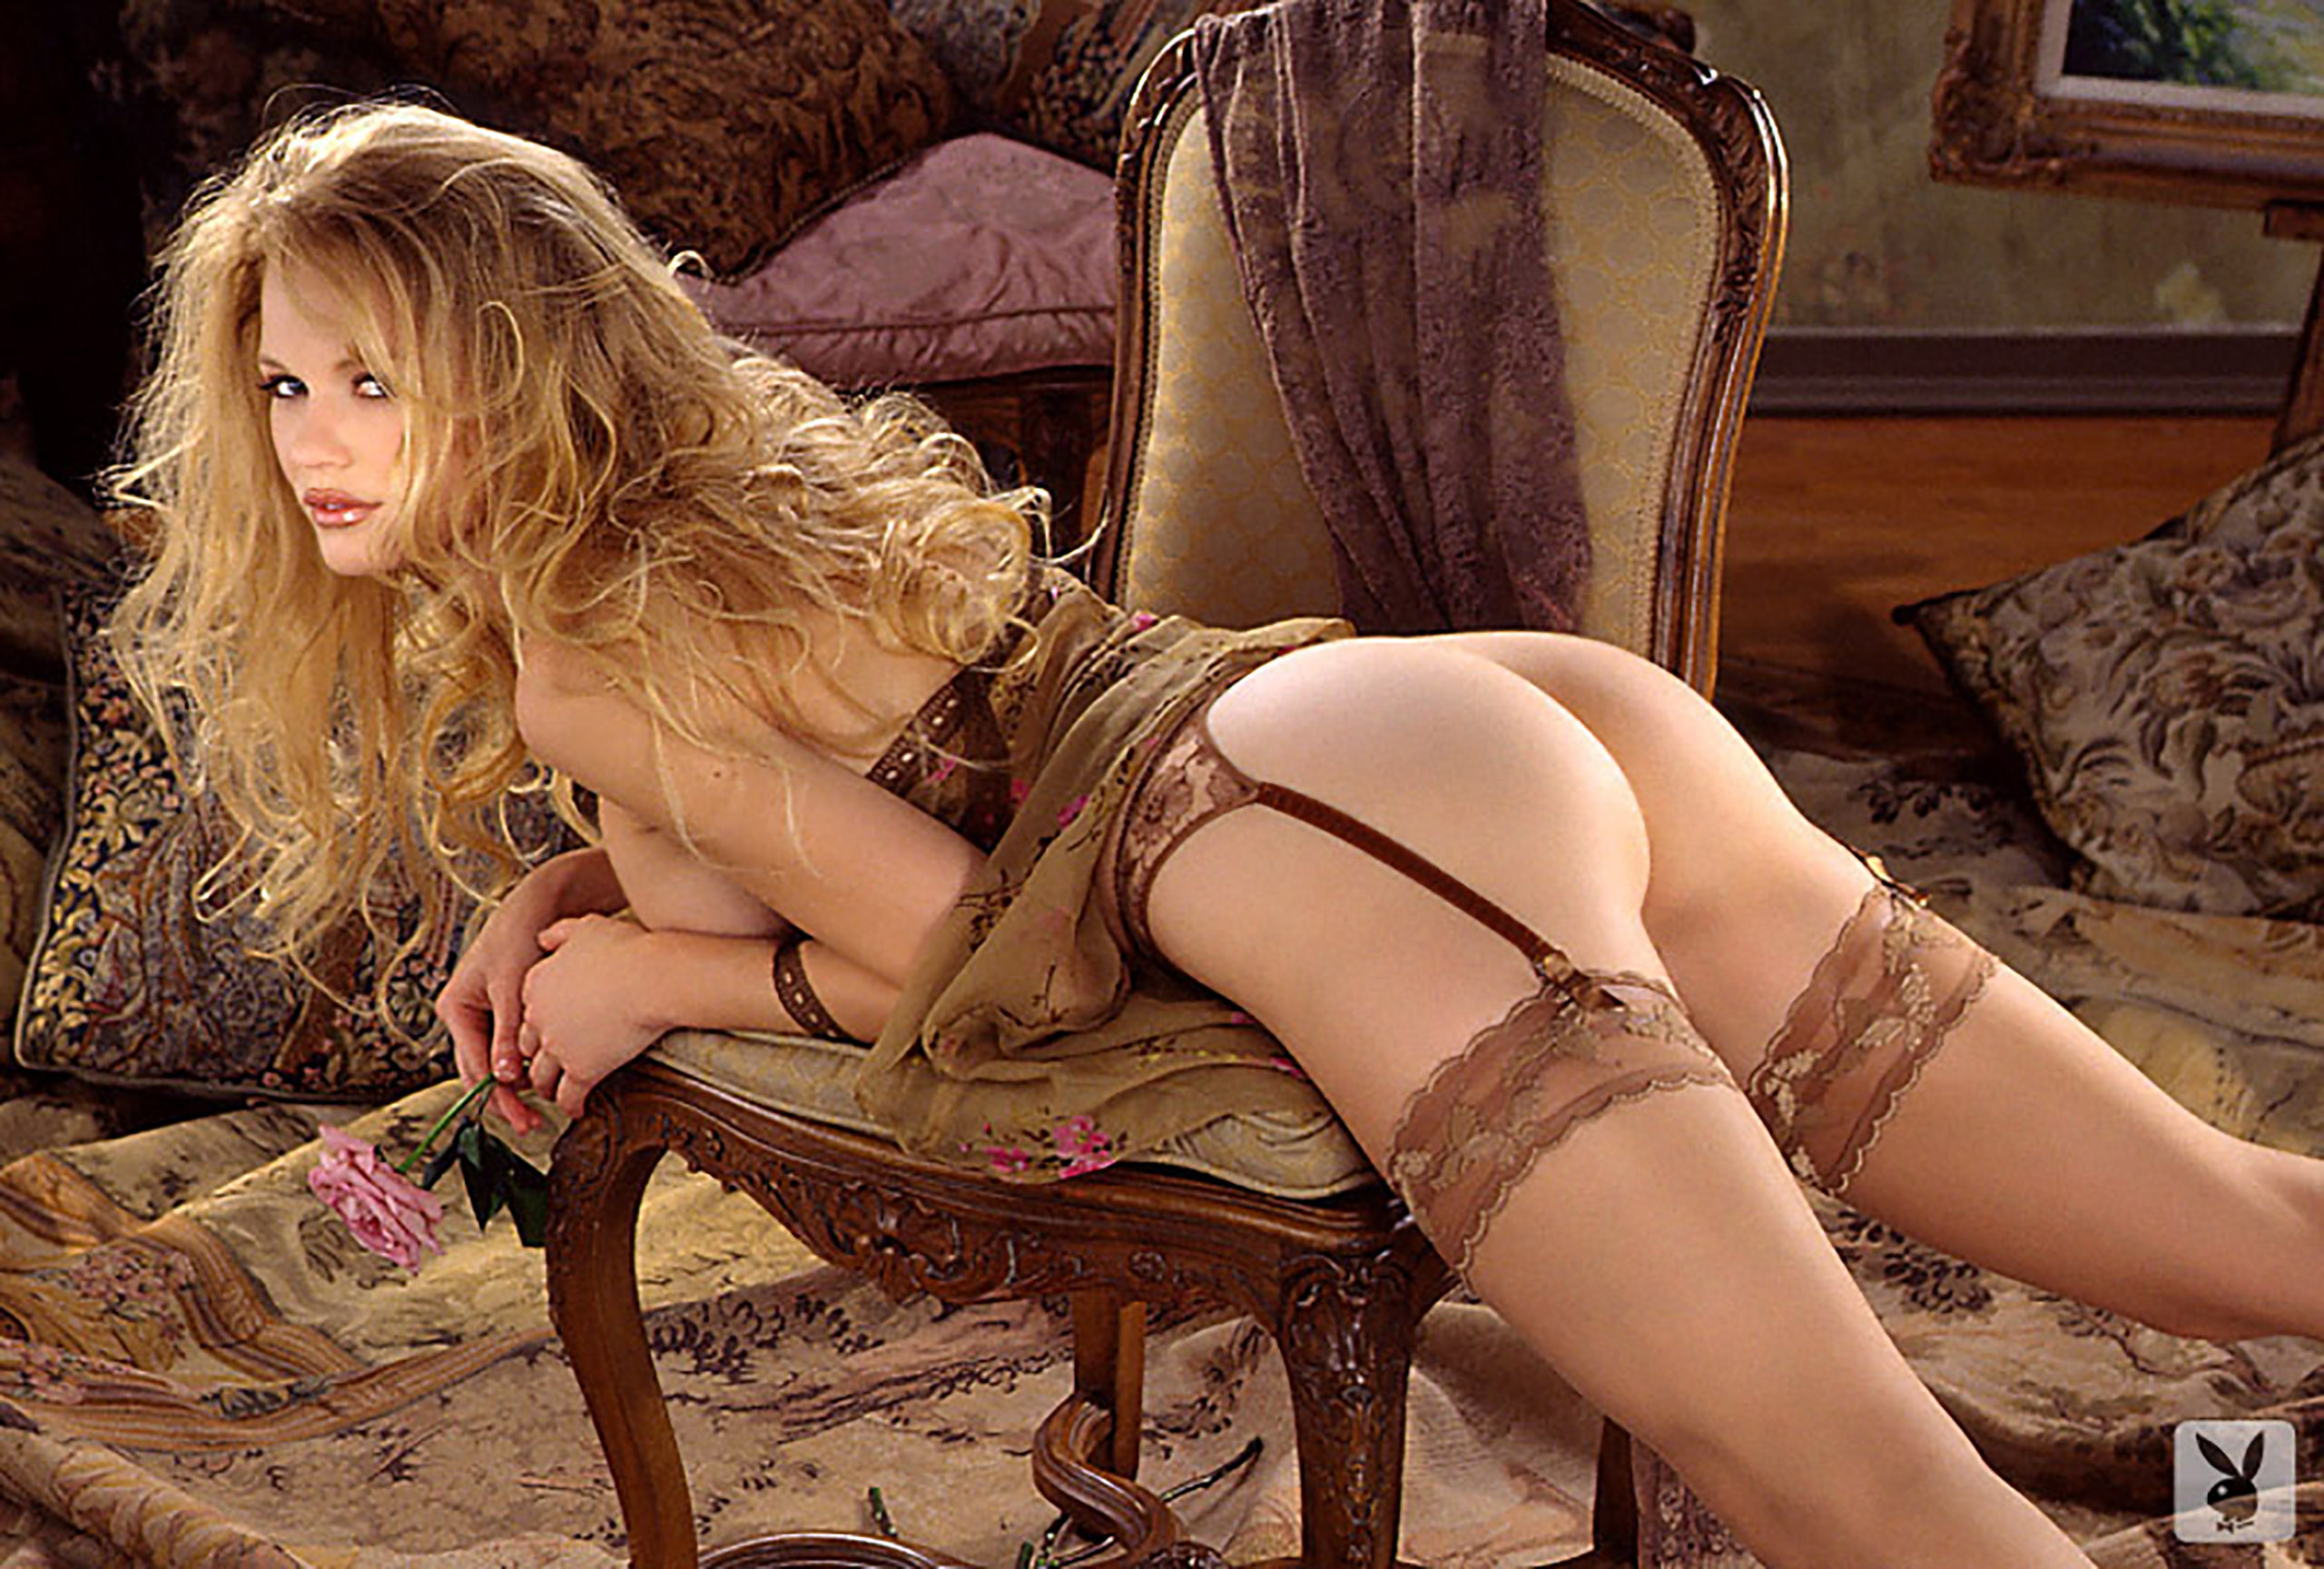 Apologise, but tiffany toth nude hauiry pussy boned interesting moment